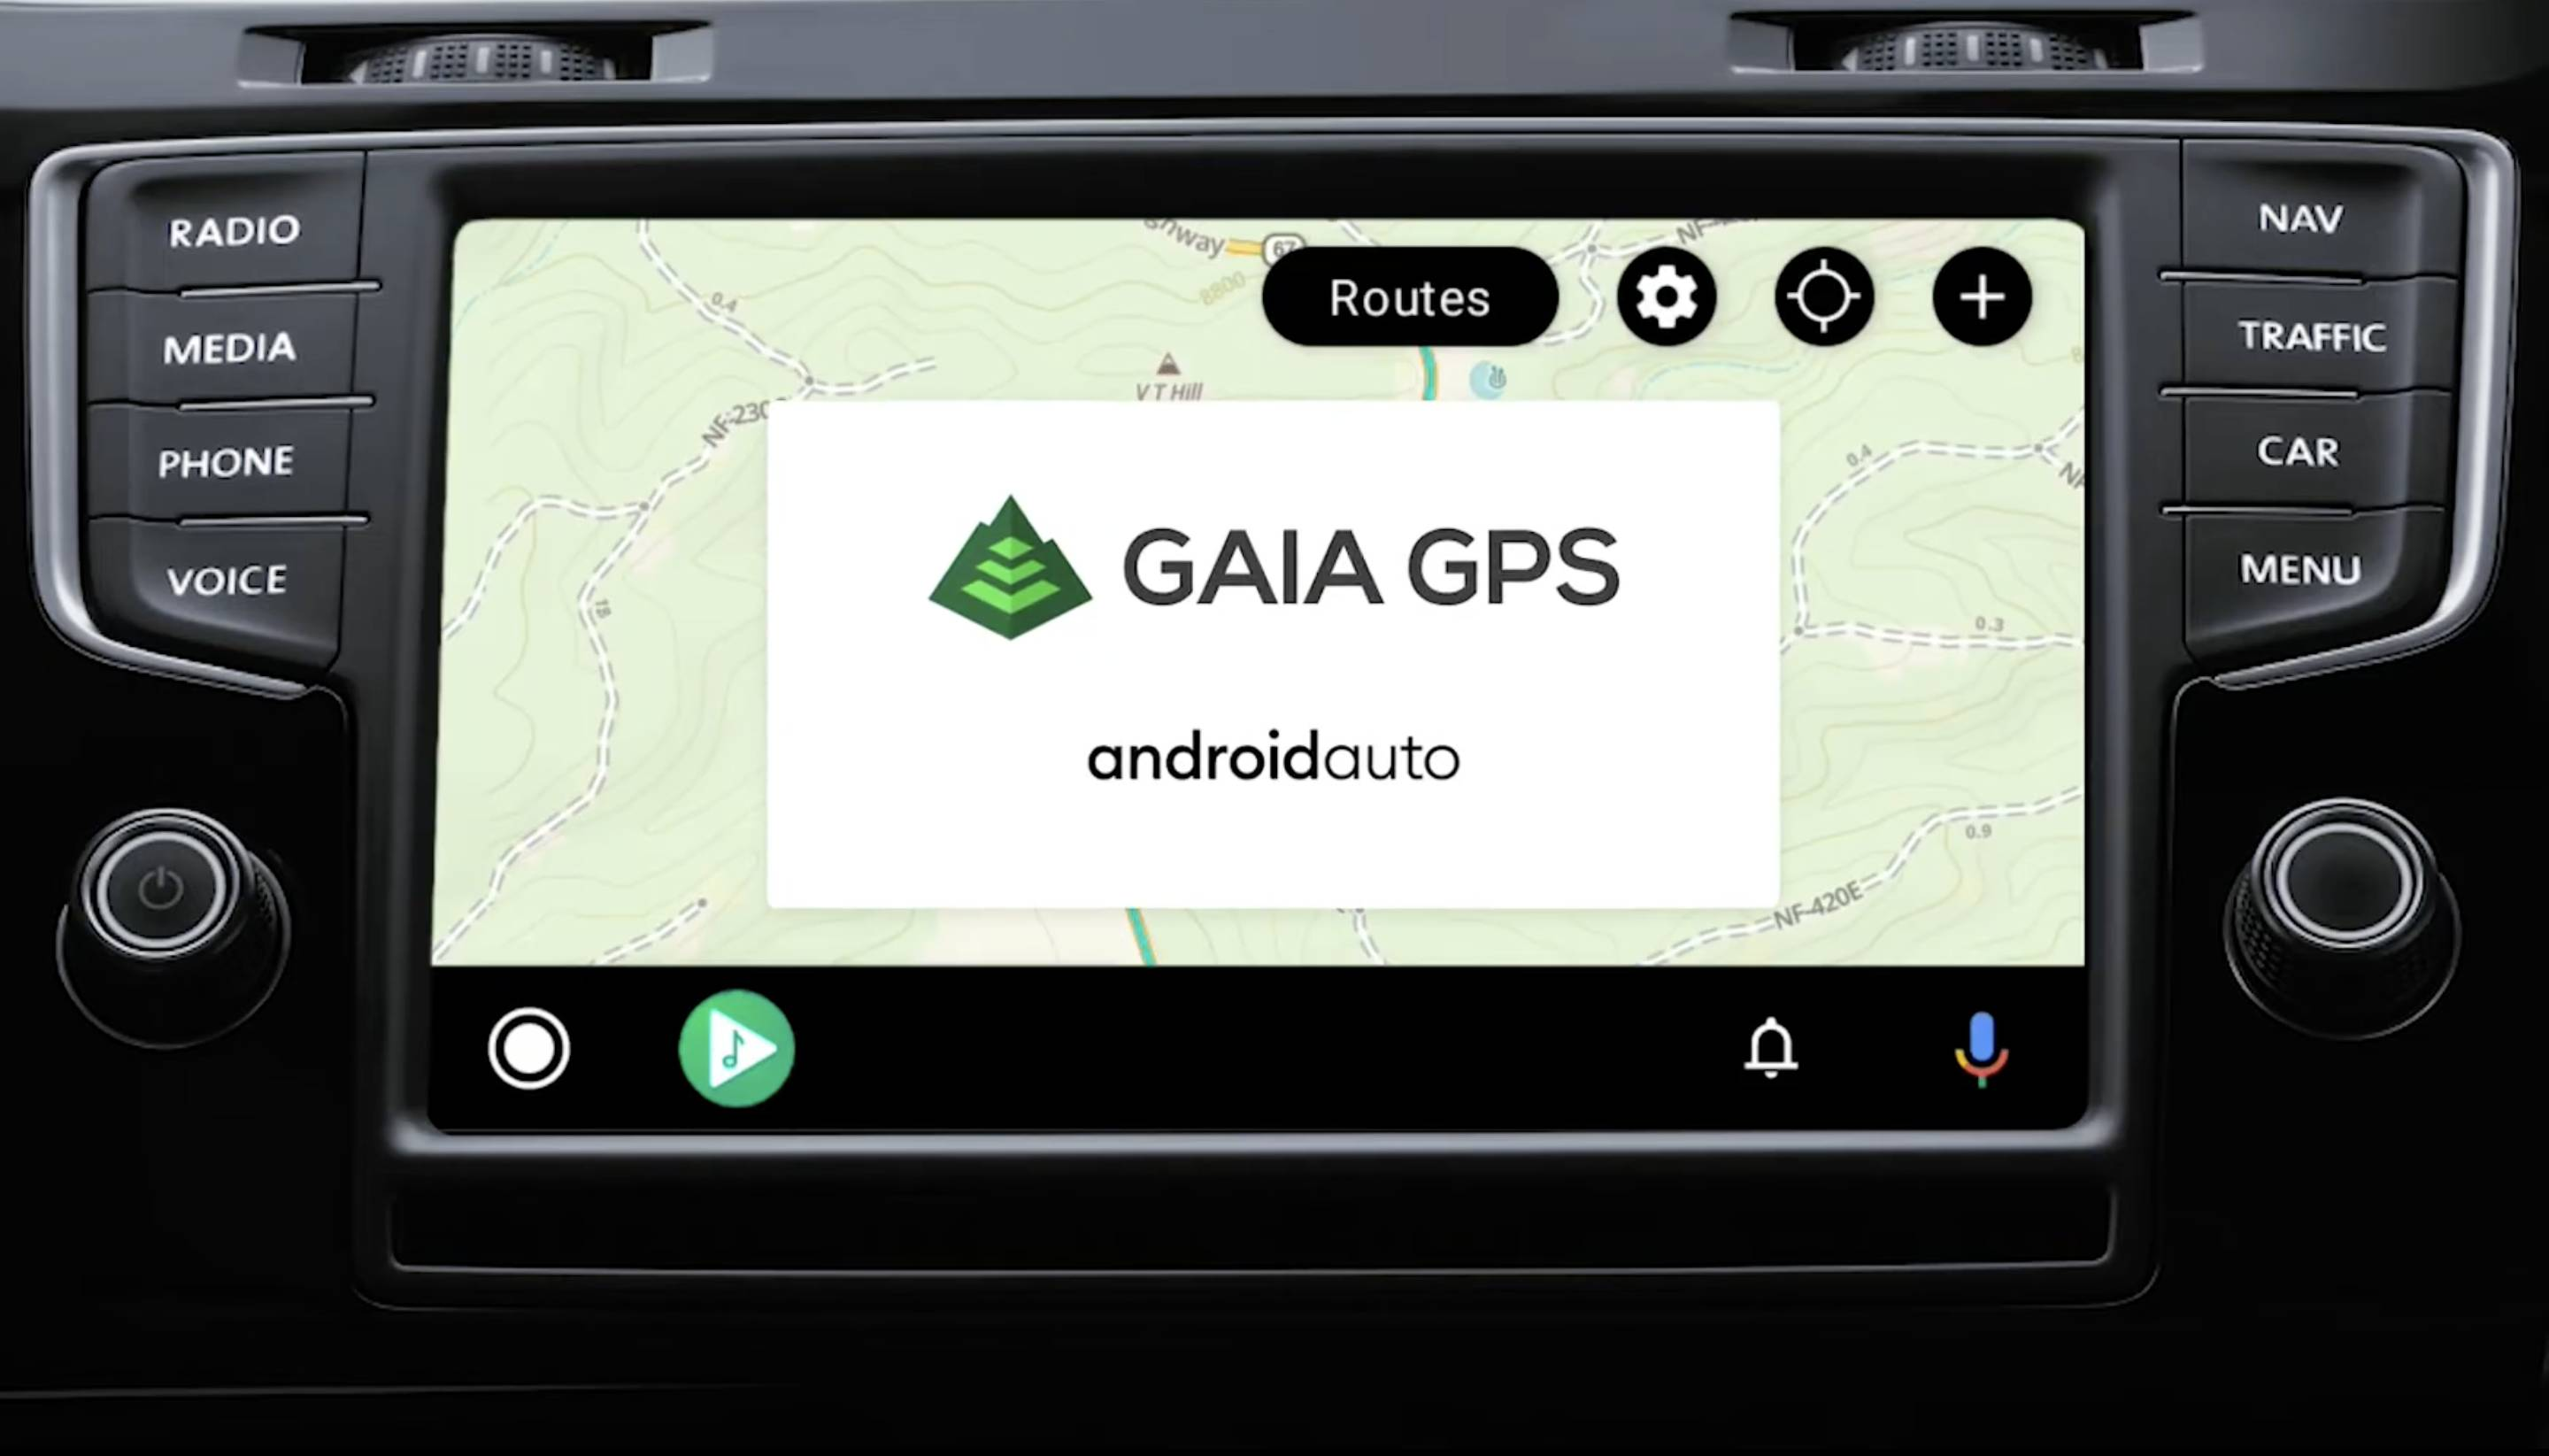 gaia gps android auto feature on screen on car dash